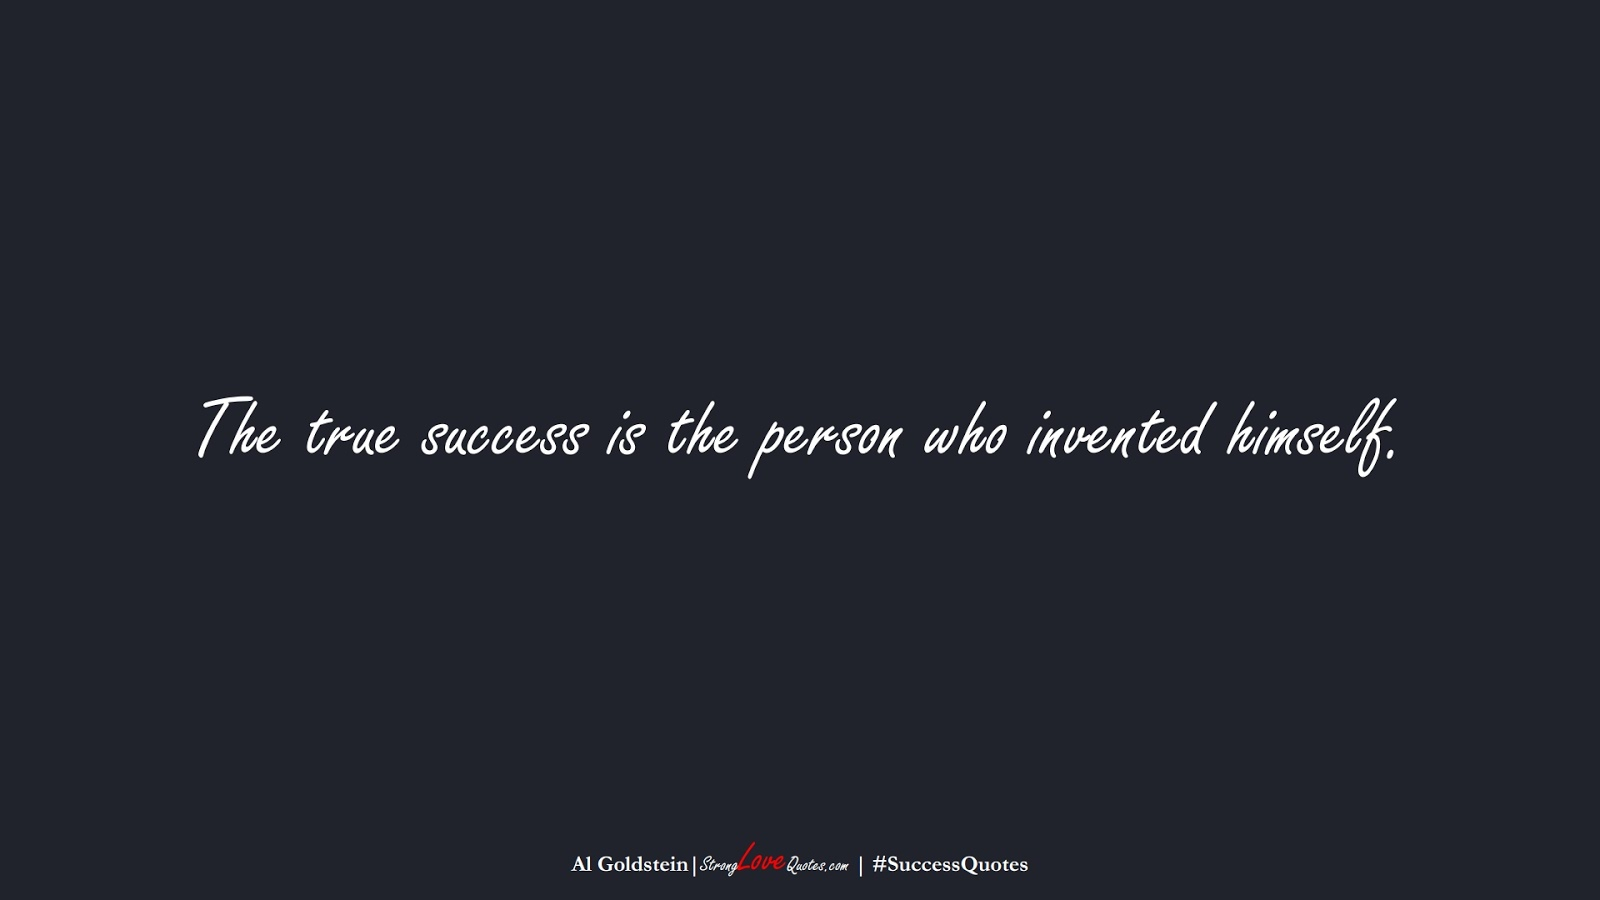 The true success is the person who invented himself. (Al Goldstein);  #SuccessQuotes